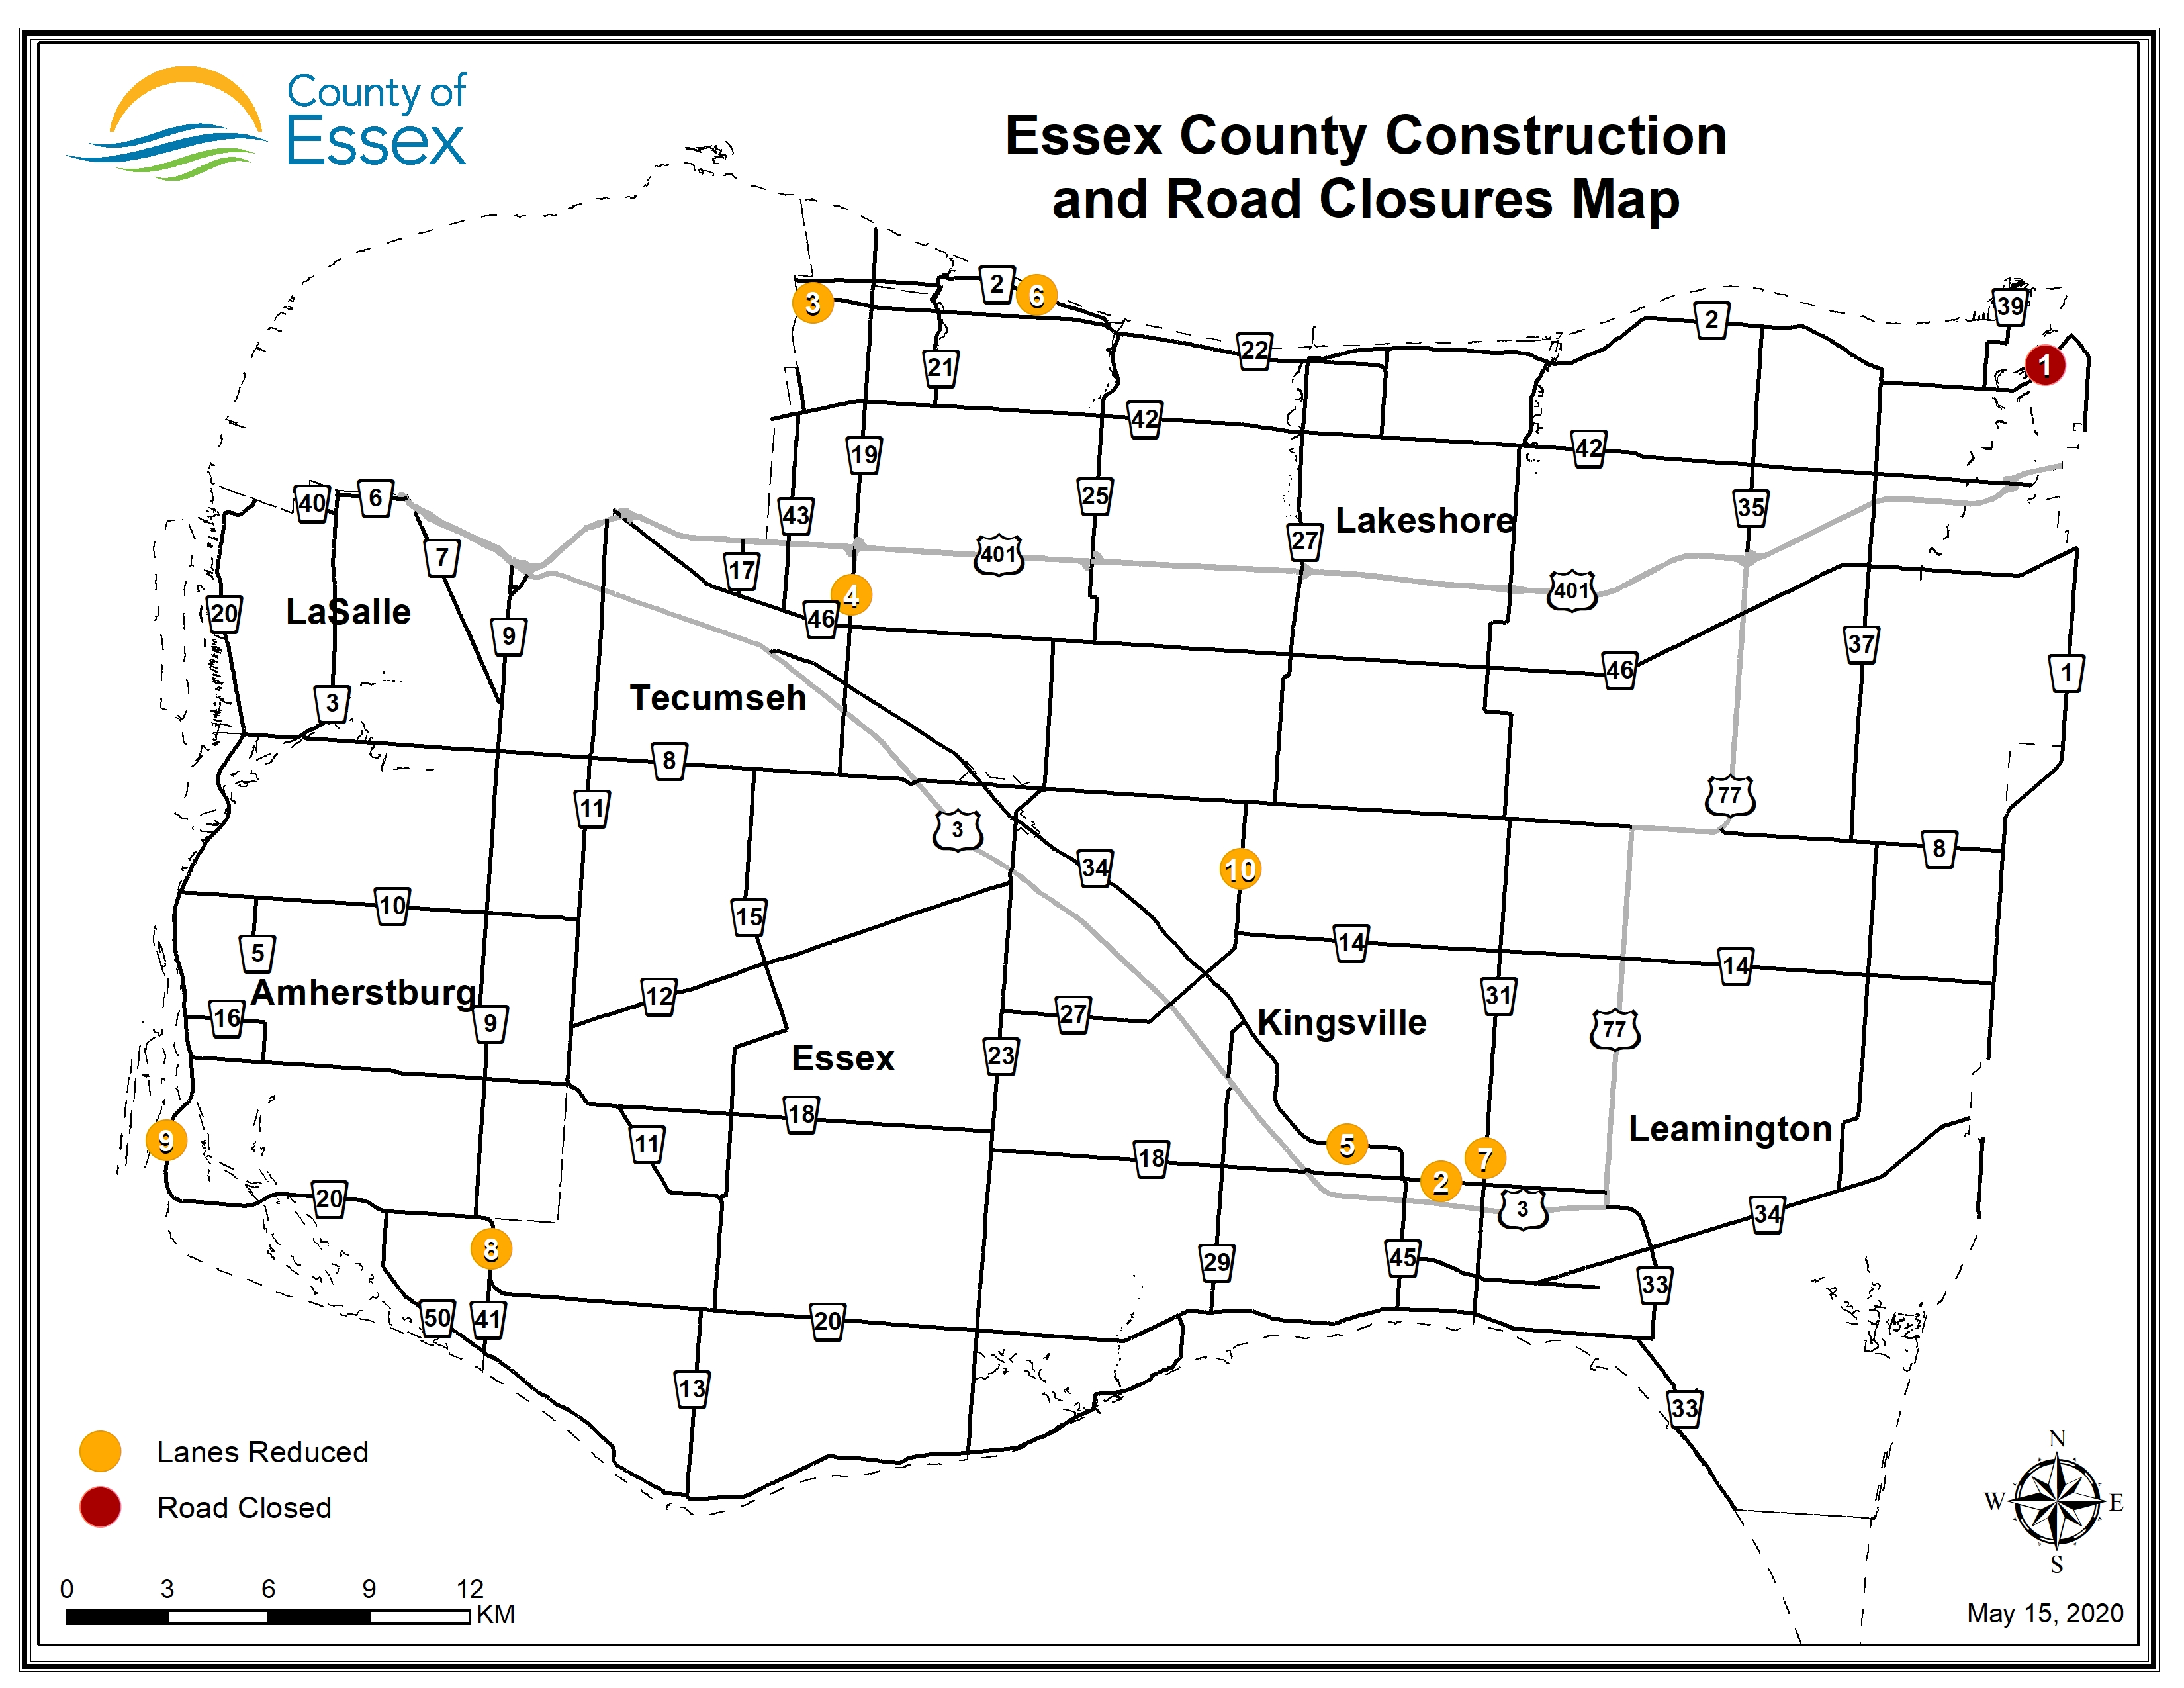 A map of Essex County showing road closures and lane restrictions for May 15, 2020